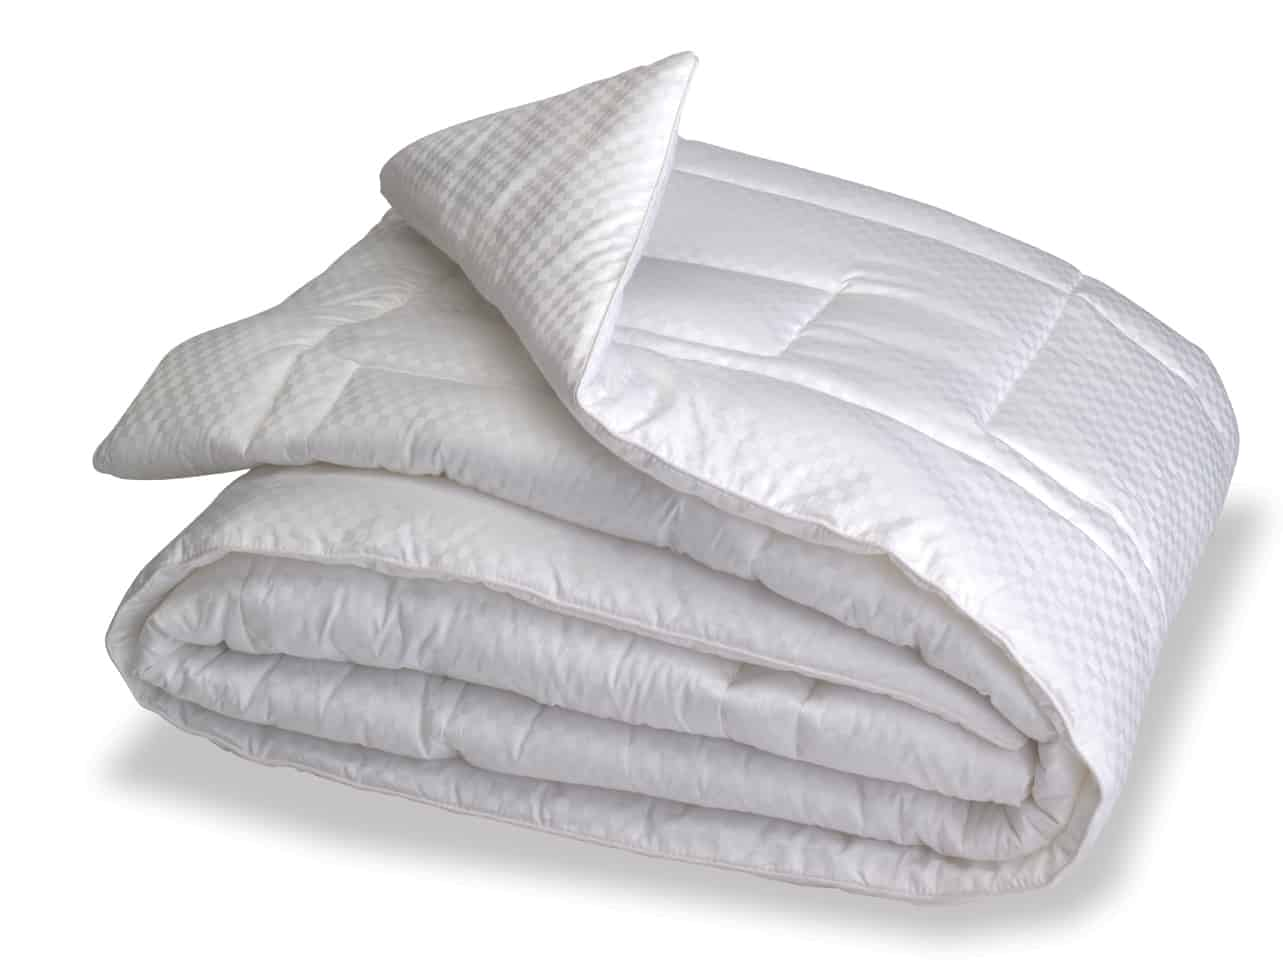 A picture of the nikken product dream comforter is part of a total Nikken naturest sleep system and is amazing.